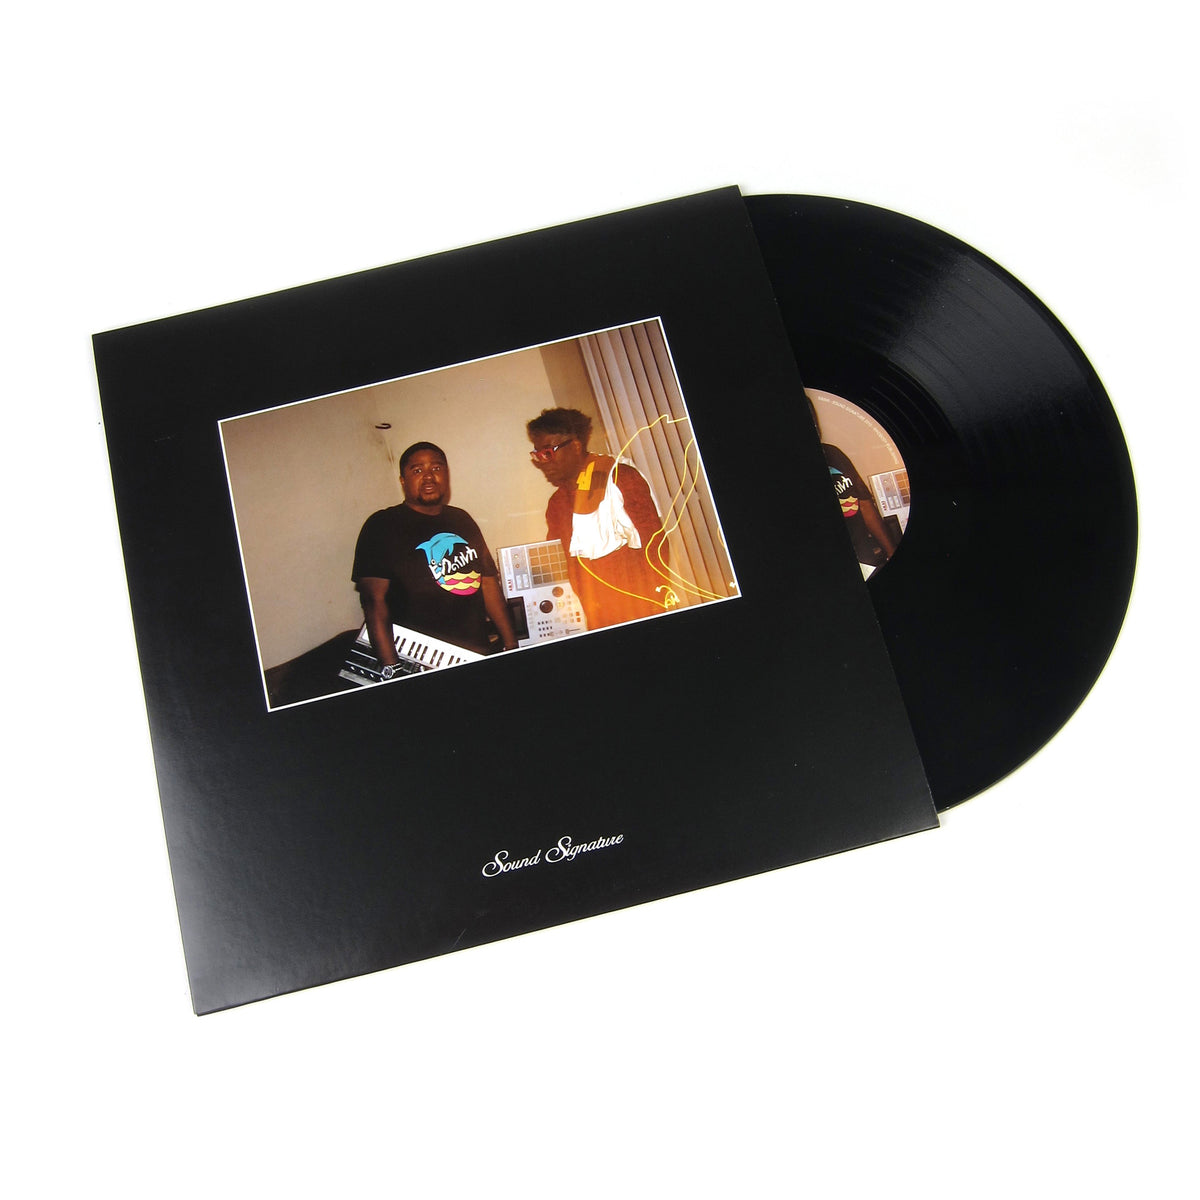 Byron The Aquarius: High Life EP Vinyl 12""